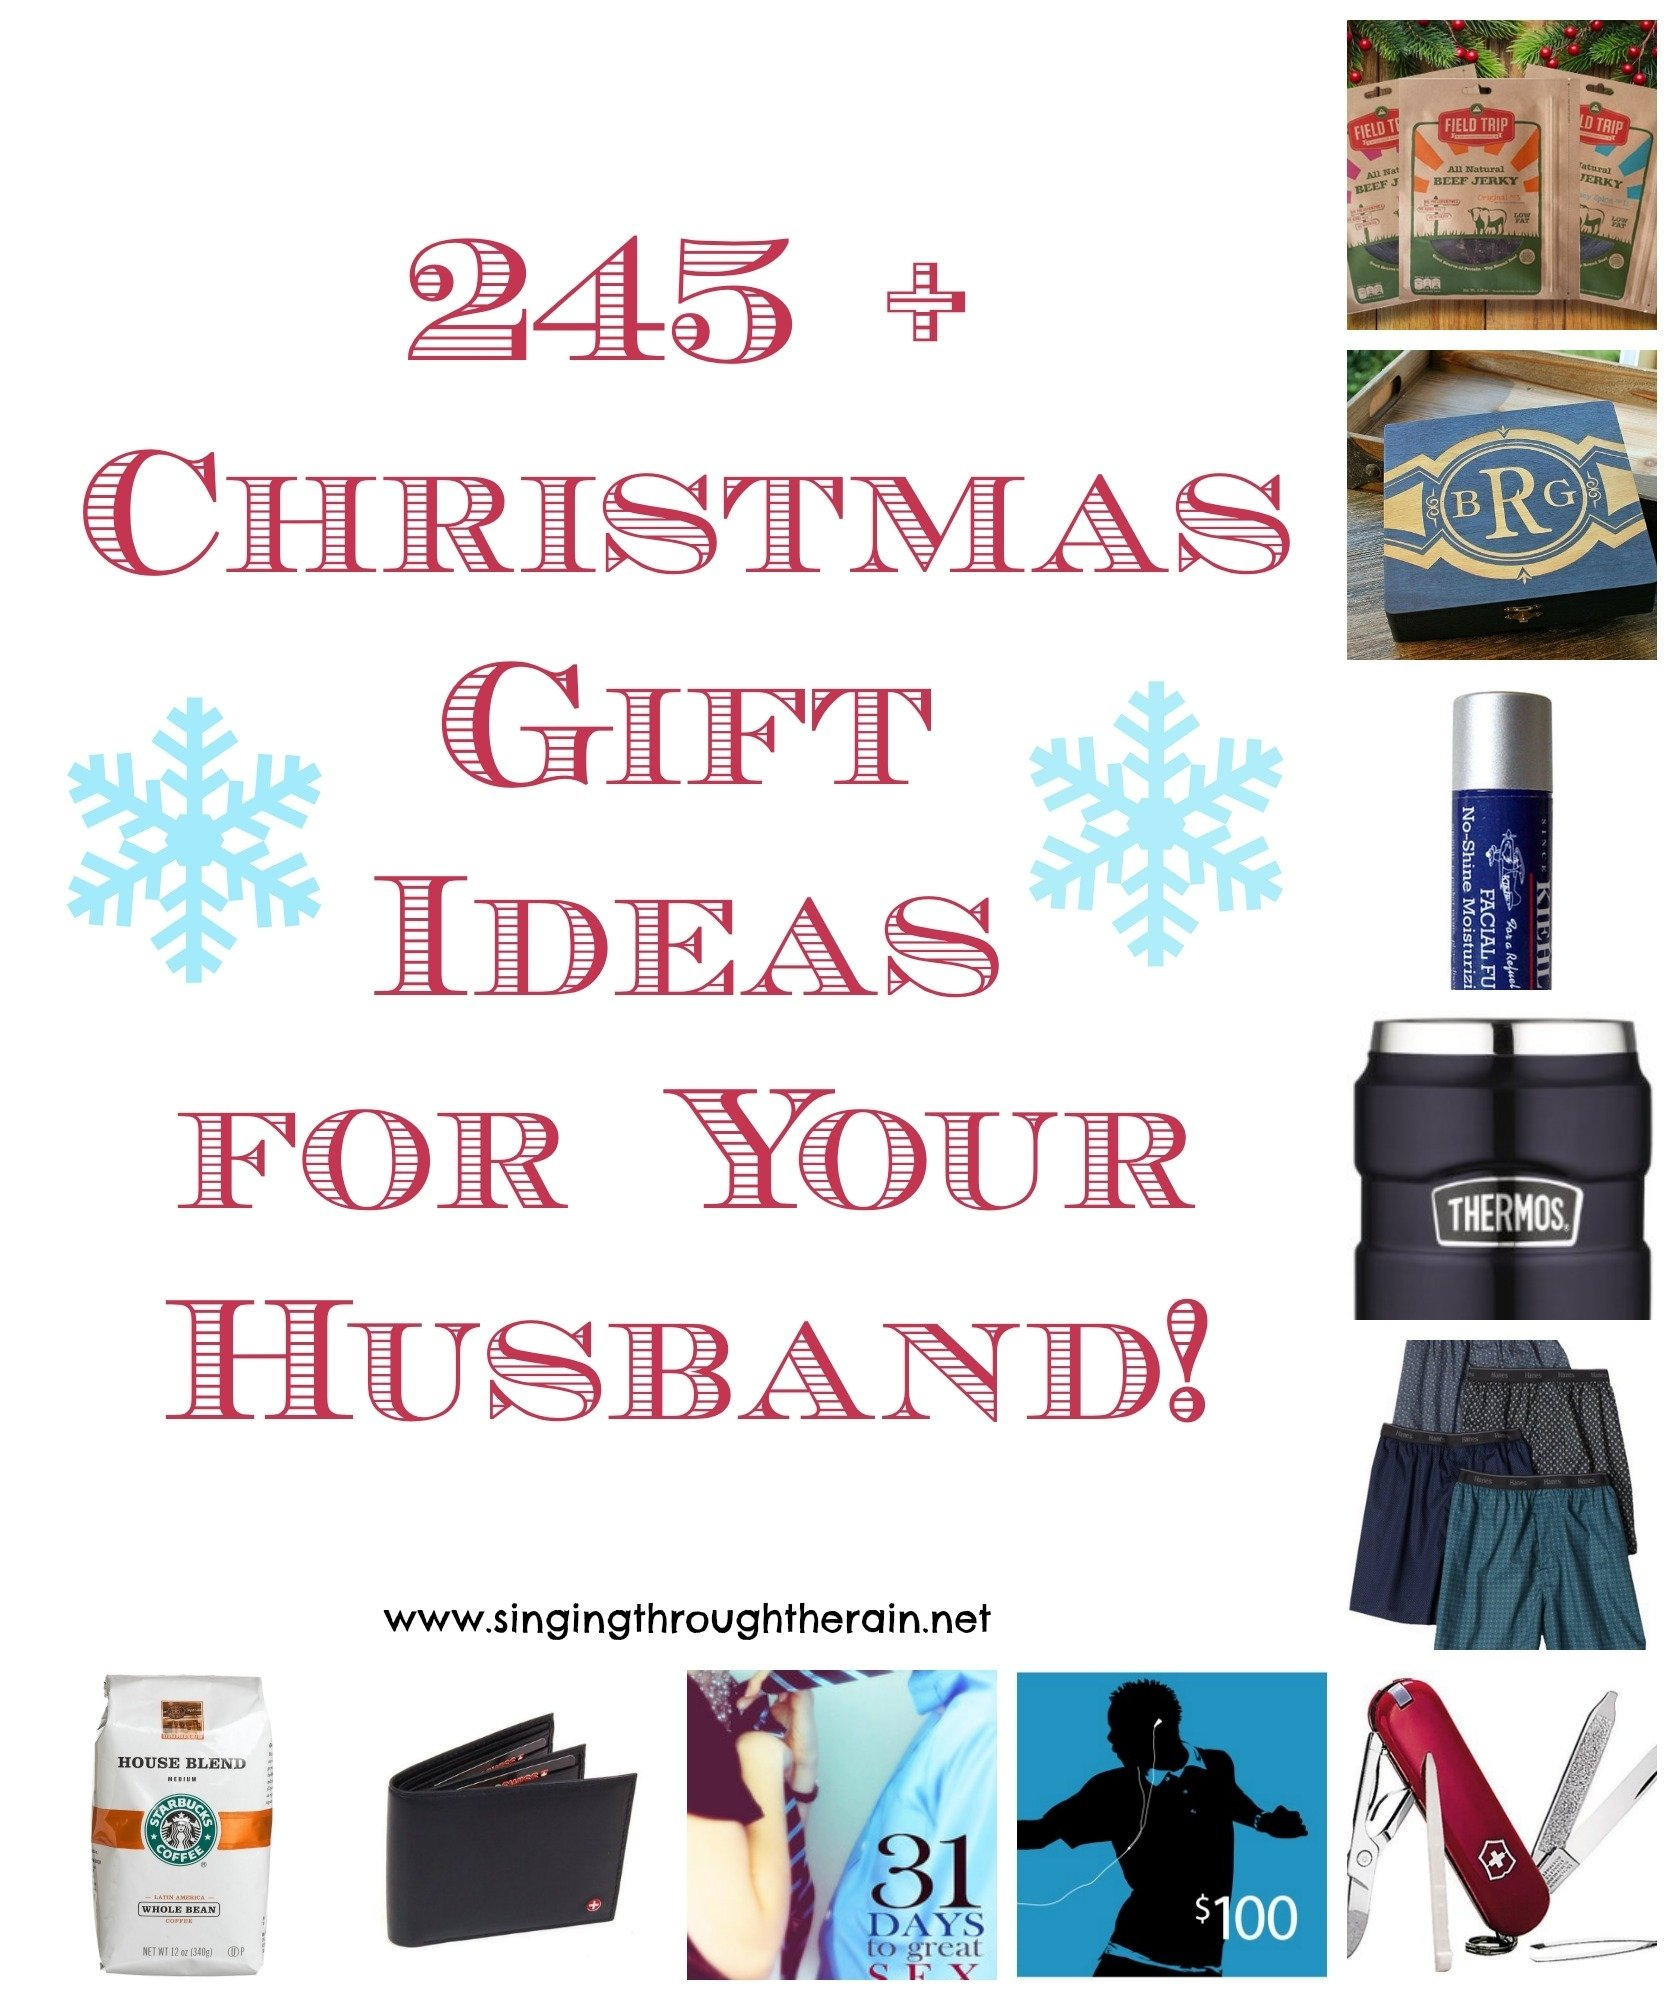 10 Fantastic Gift Ideas For My Wife For Christmas 245 christmas gift ideas for your husband singing through the rain 12